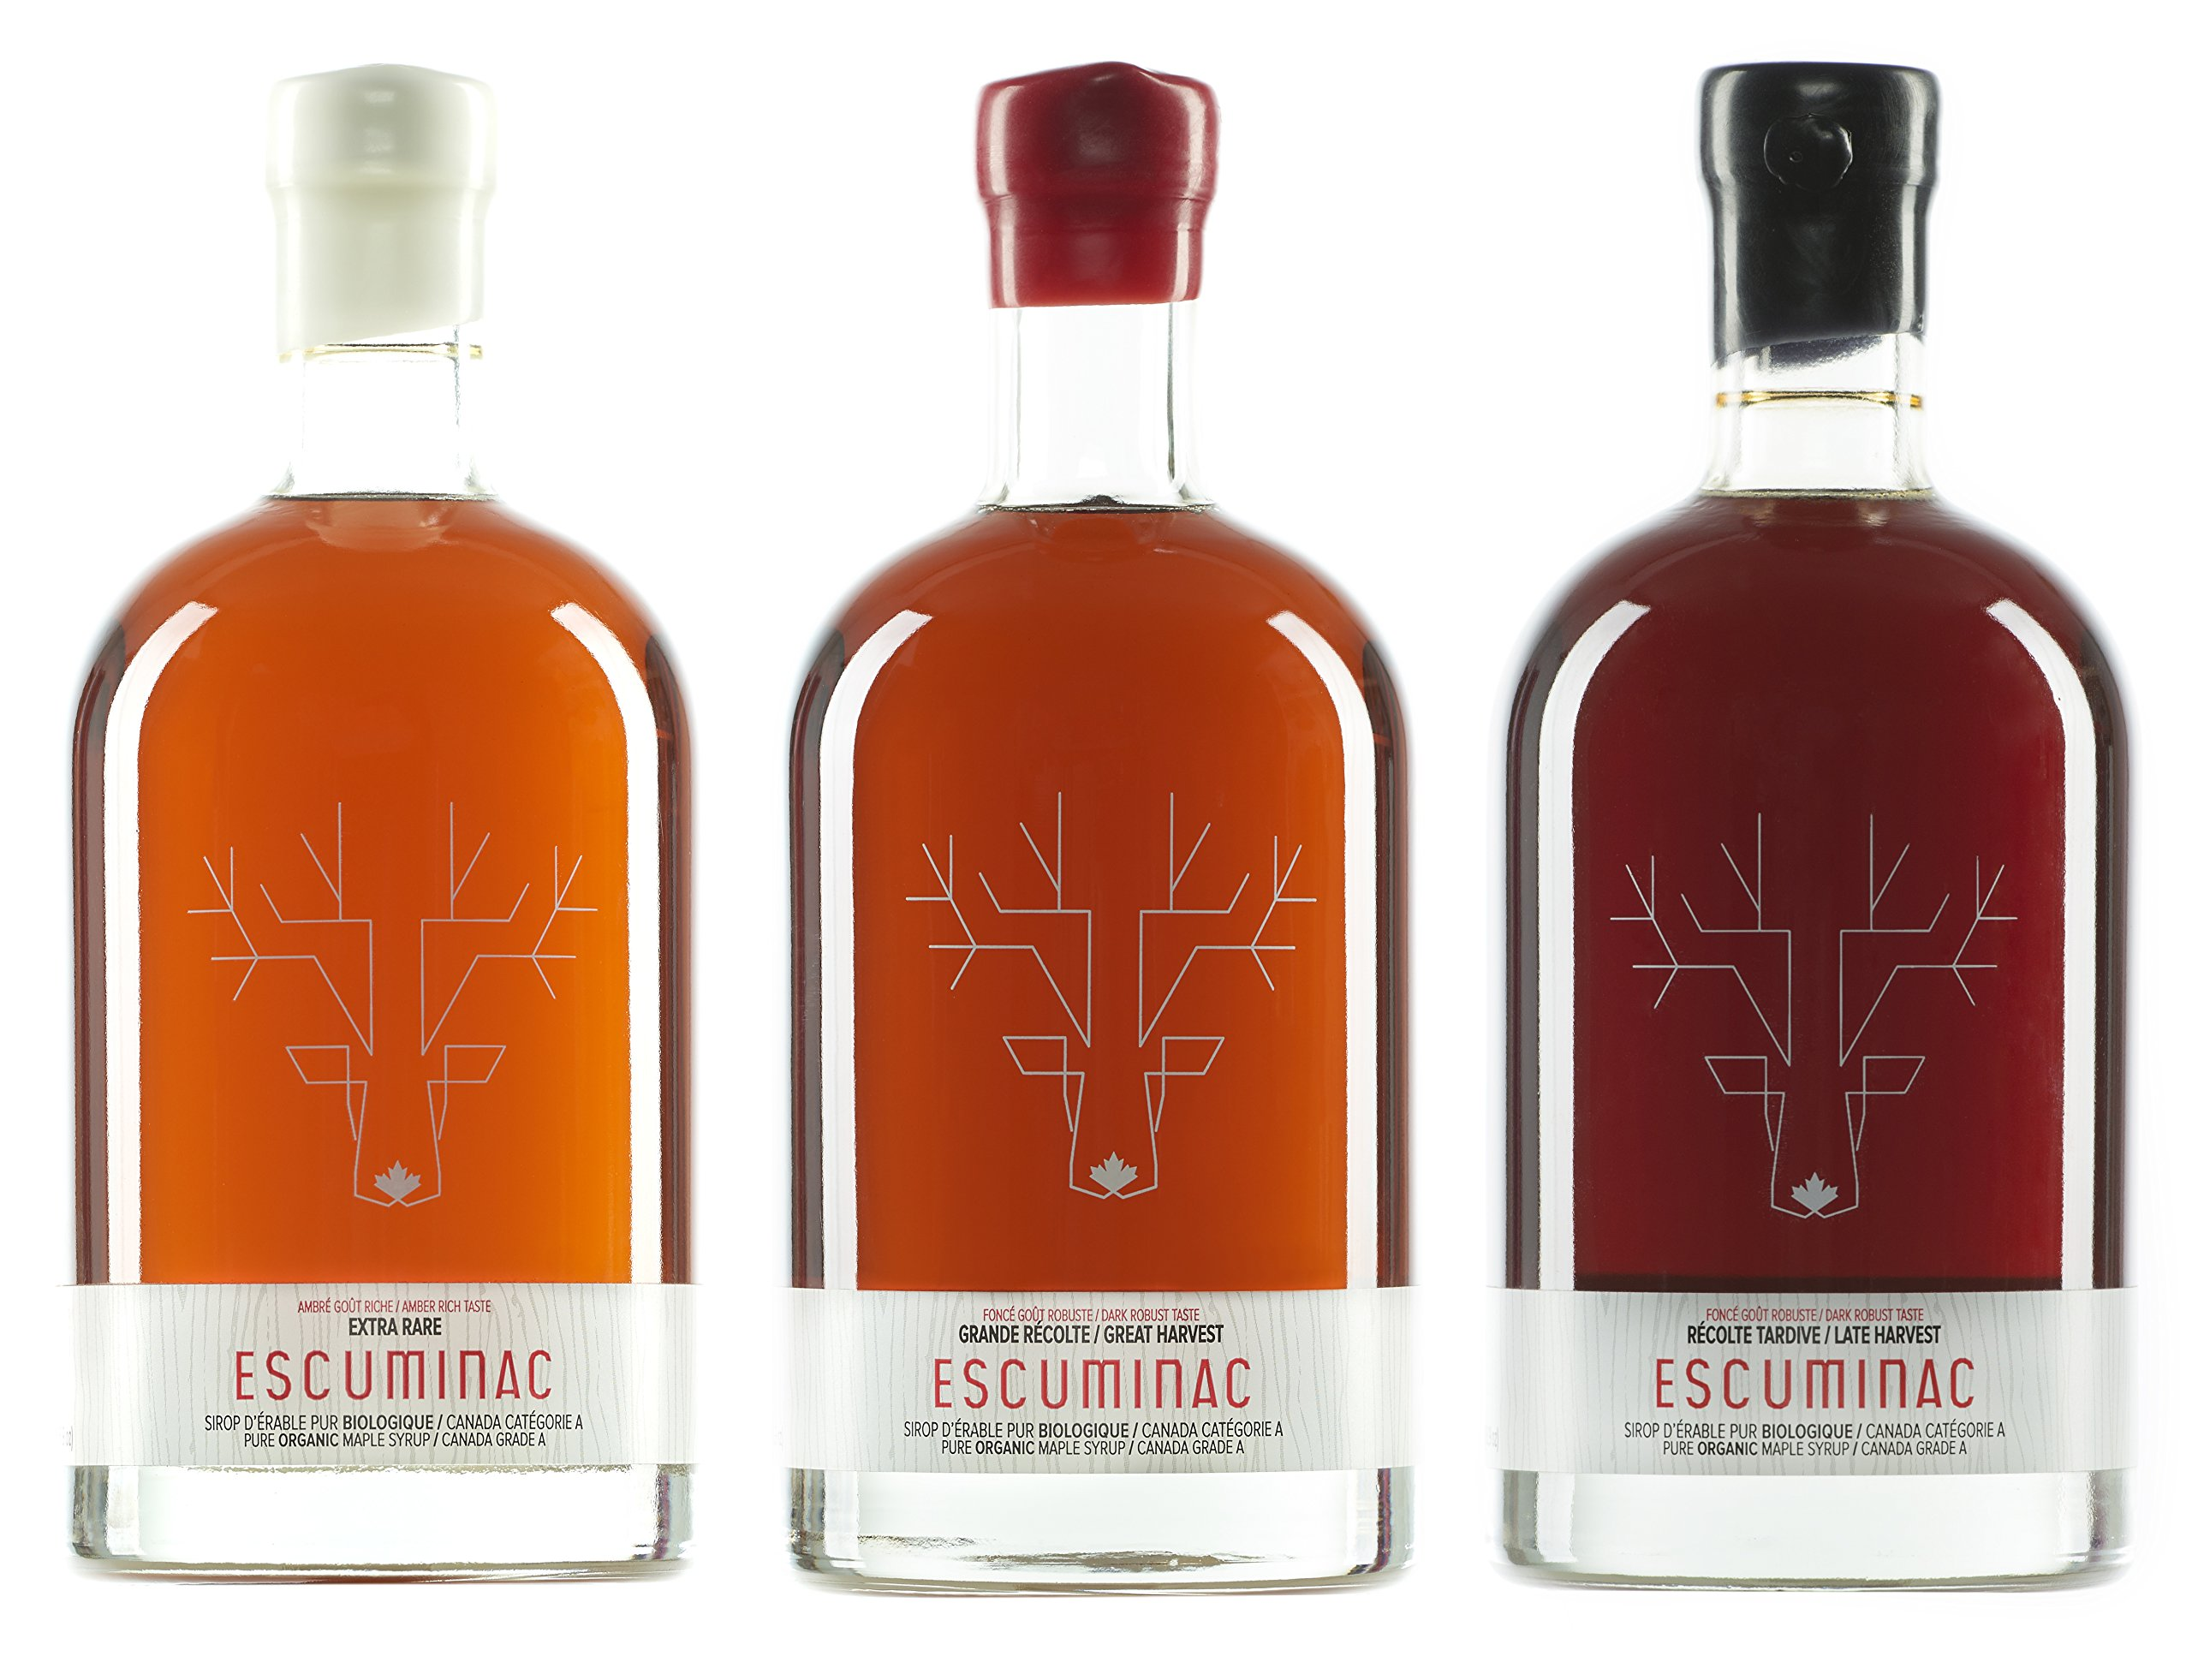 Award Winning Escuminac Canadian Maple Syrup Gift Bundle Grade A Including Our Extra Rare, Great Harvest and Late Harvest - Pure Organic Unblended Single Forest - 3 X 16.9 fl oz (500 ml) - Easter Gift